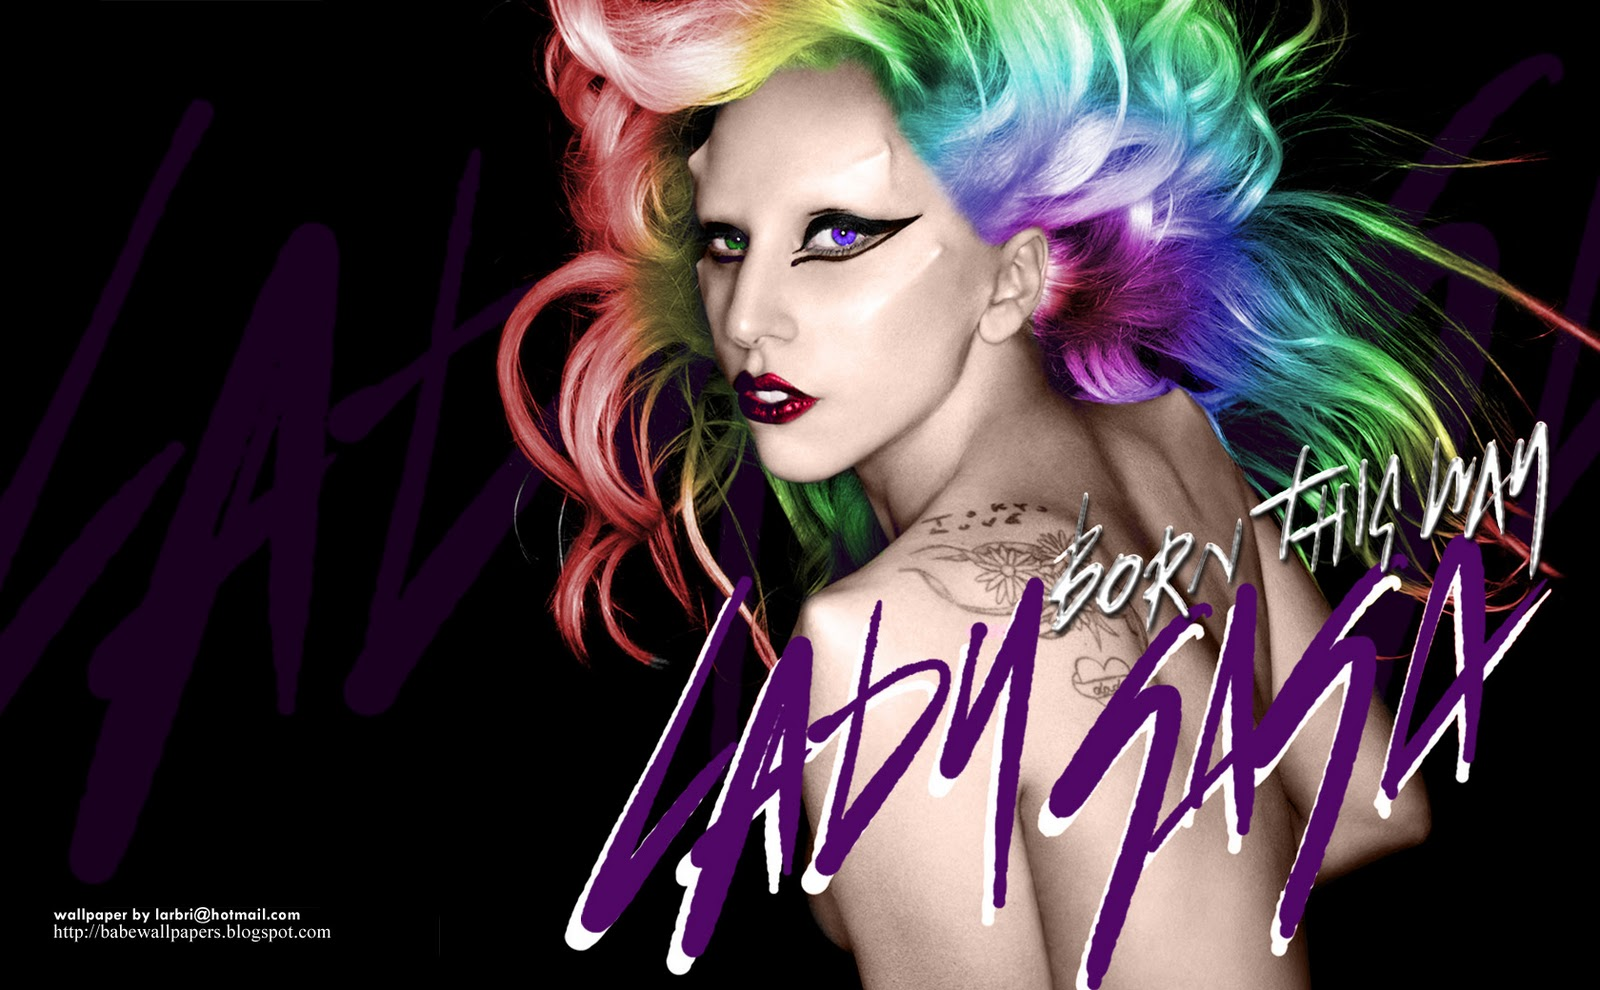 born this way album download mp3